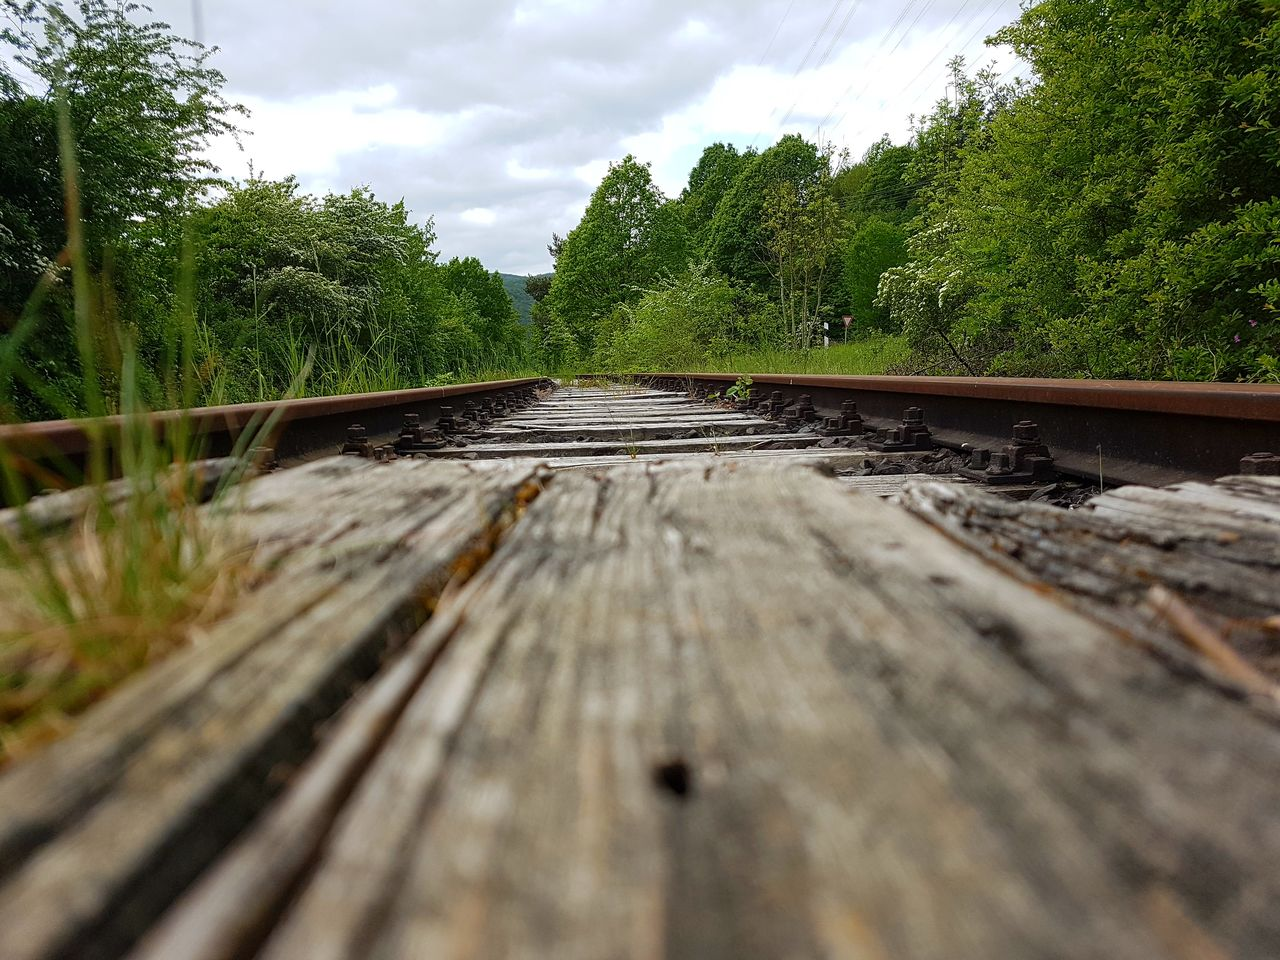 rail transportation, railroad track, tree, surface level, transportation, no people, sky, selective focus, day, wood - material, nature, cloud - sky, outdoors, growth